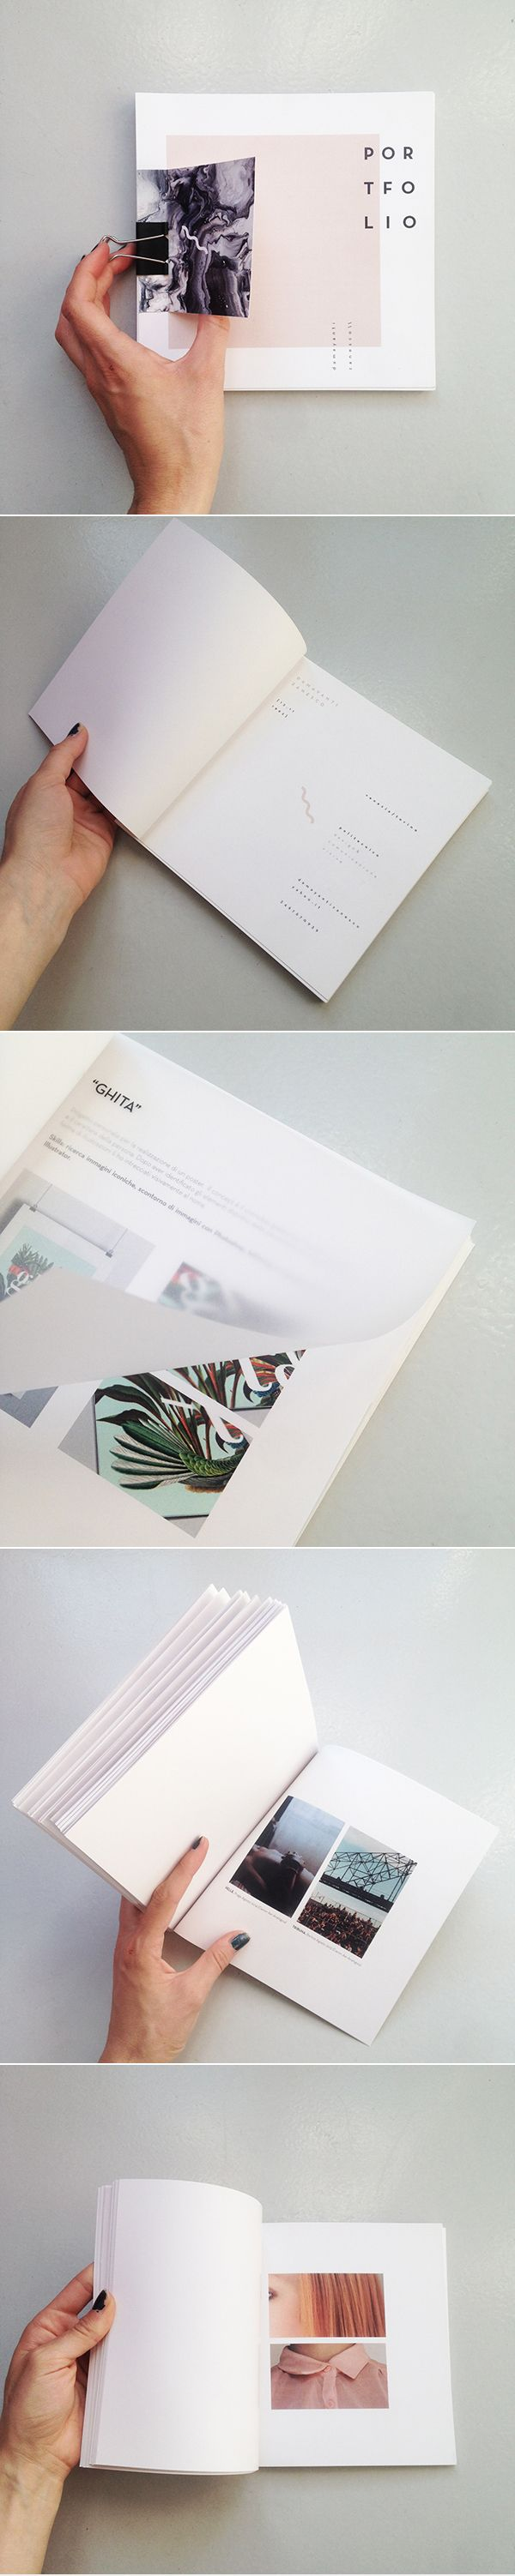 8x8 size pages are kind of different. Still makes mailing easy. Practical…